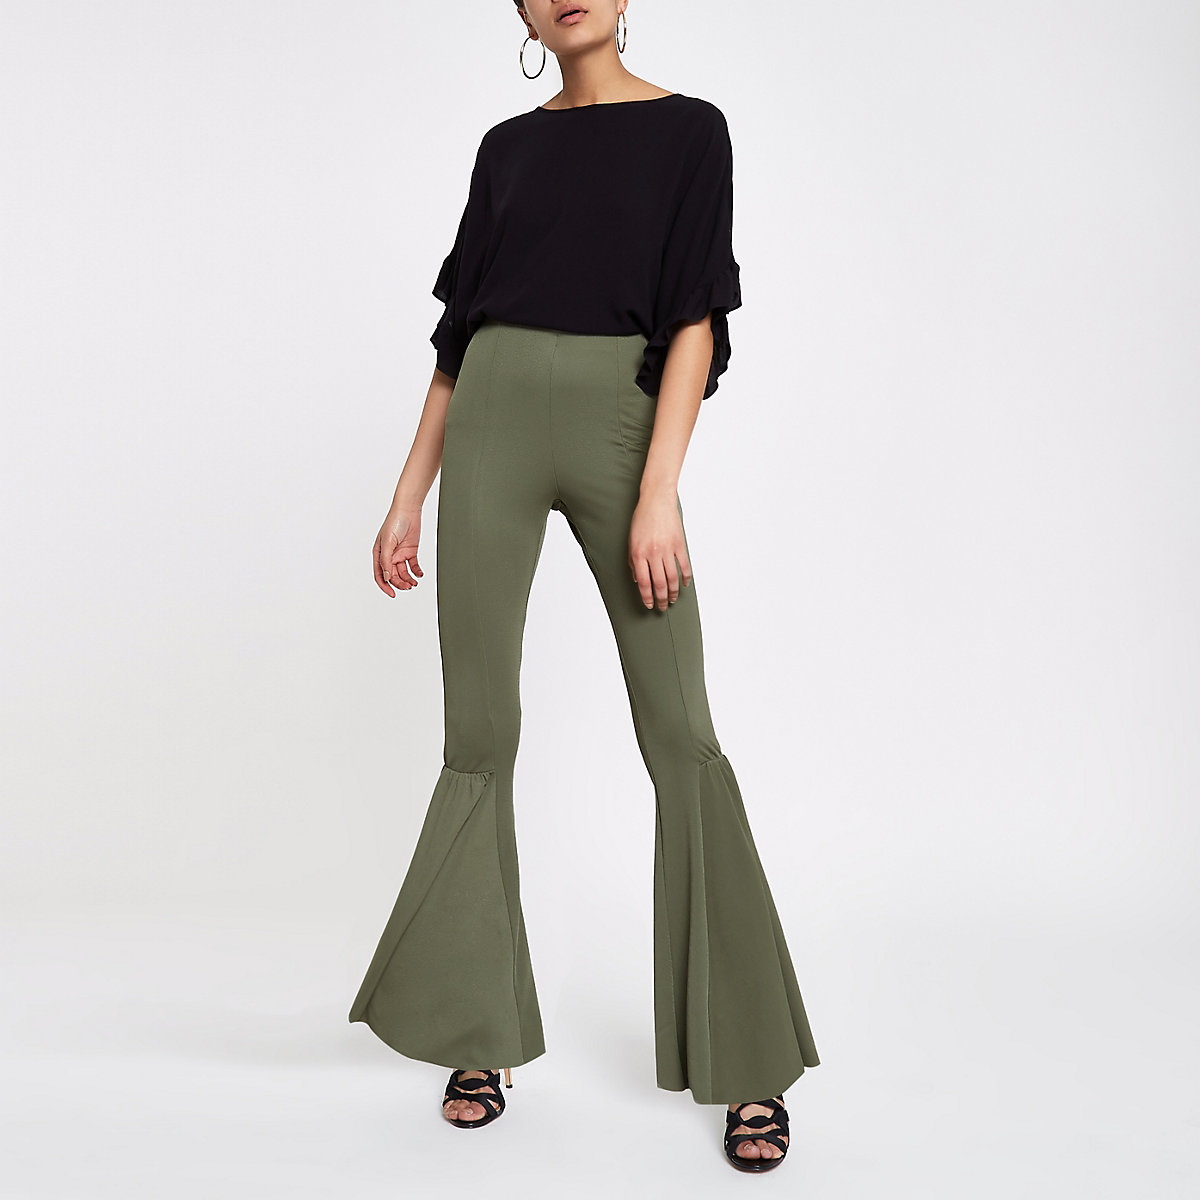 Khaki flared high waisted jersey trousers